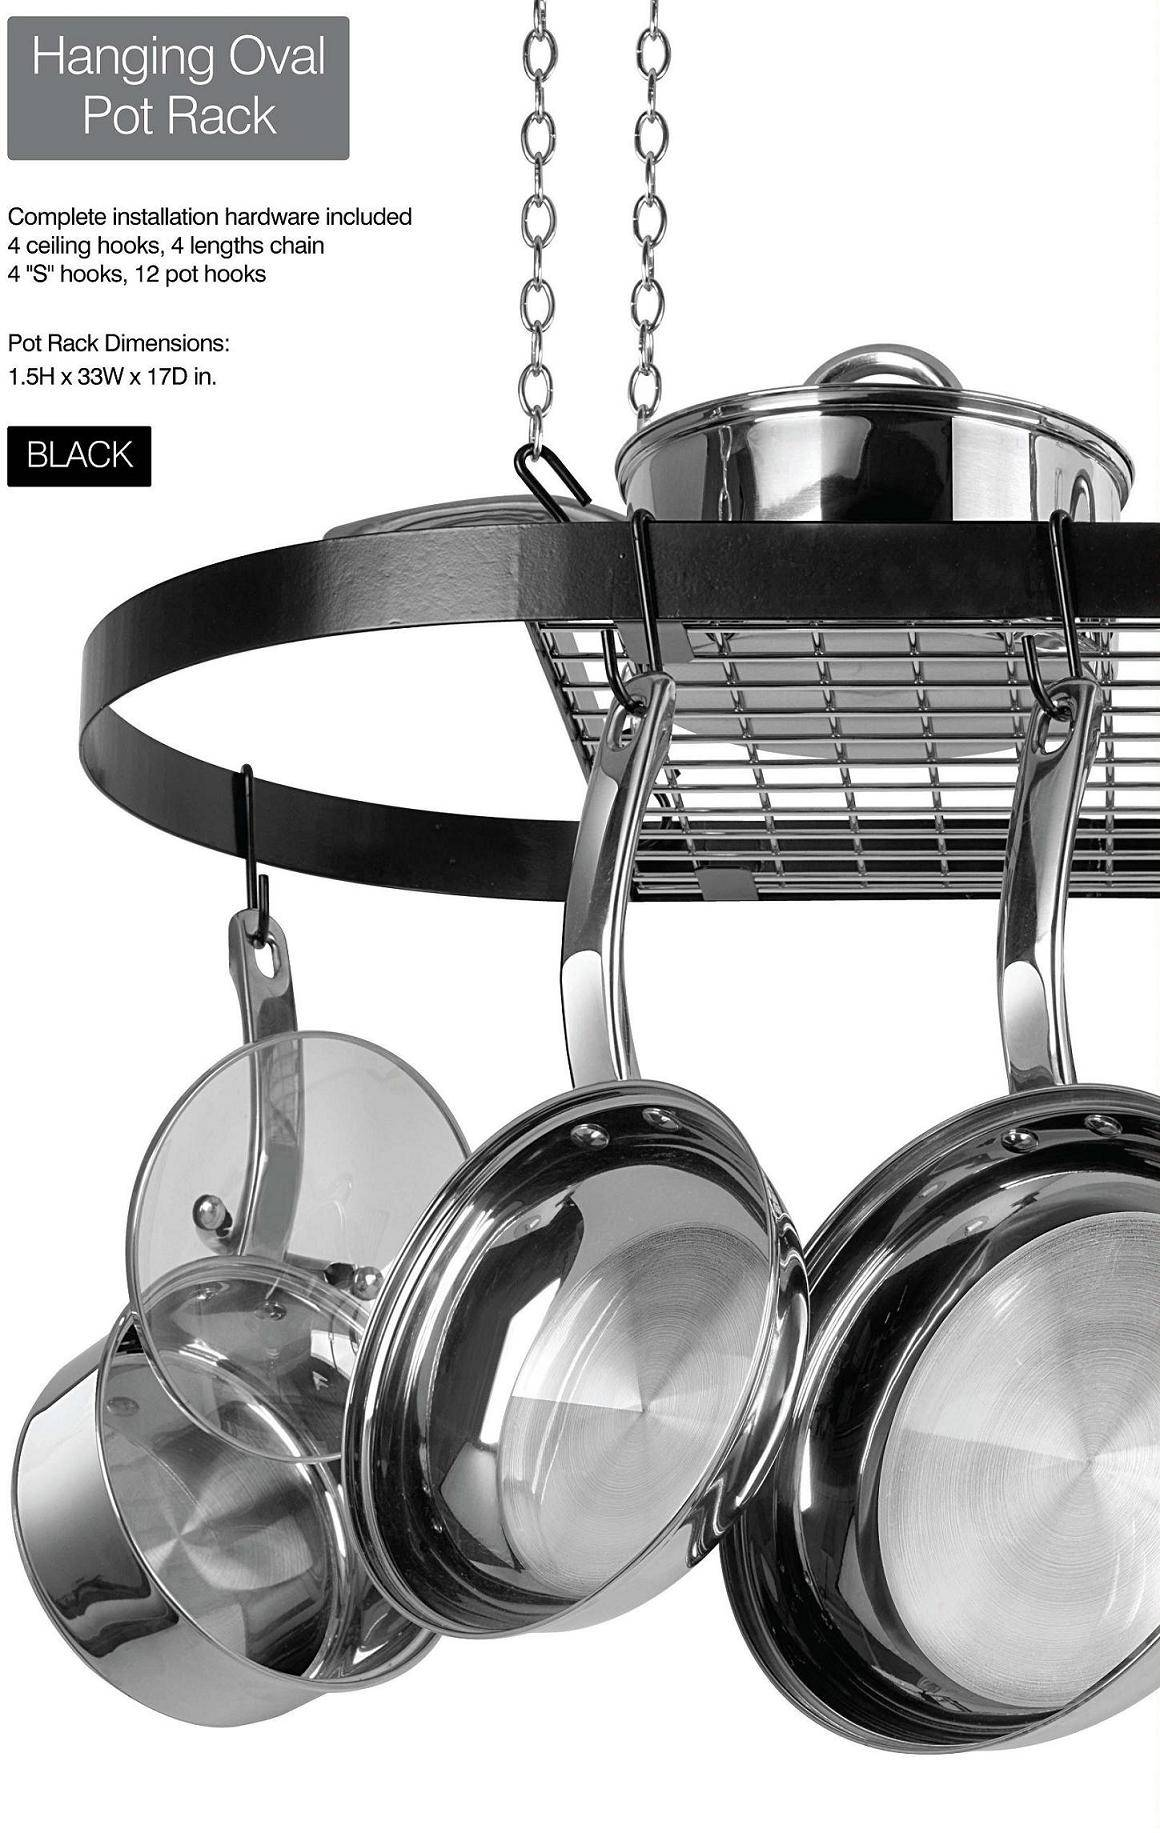 Black coating hanging pot rack